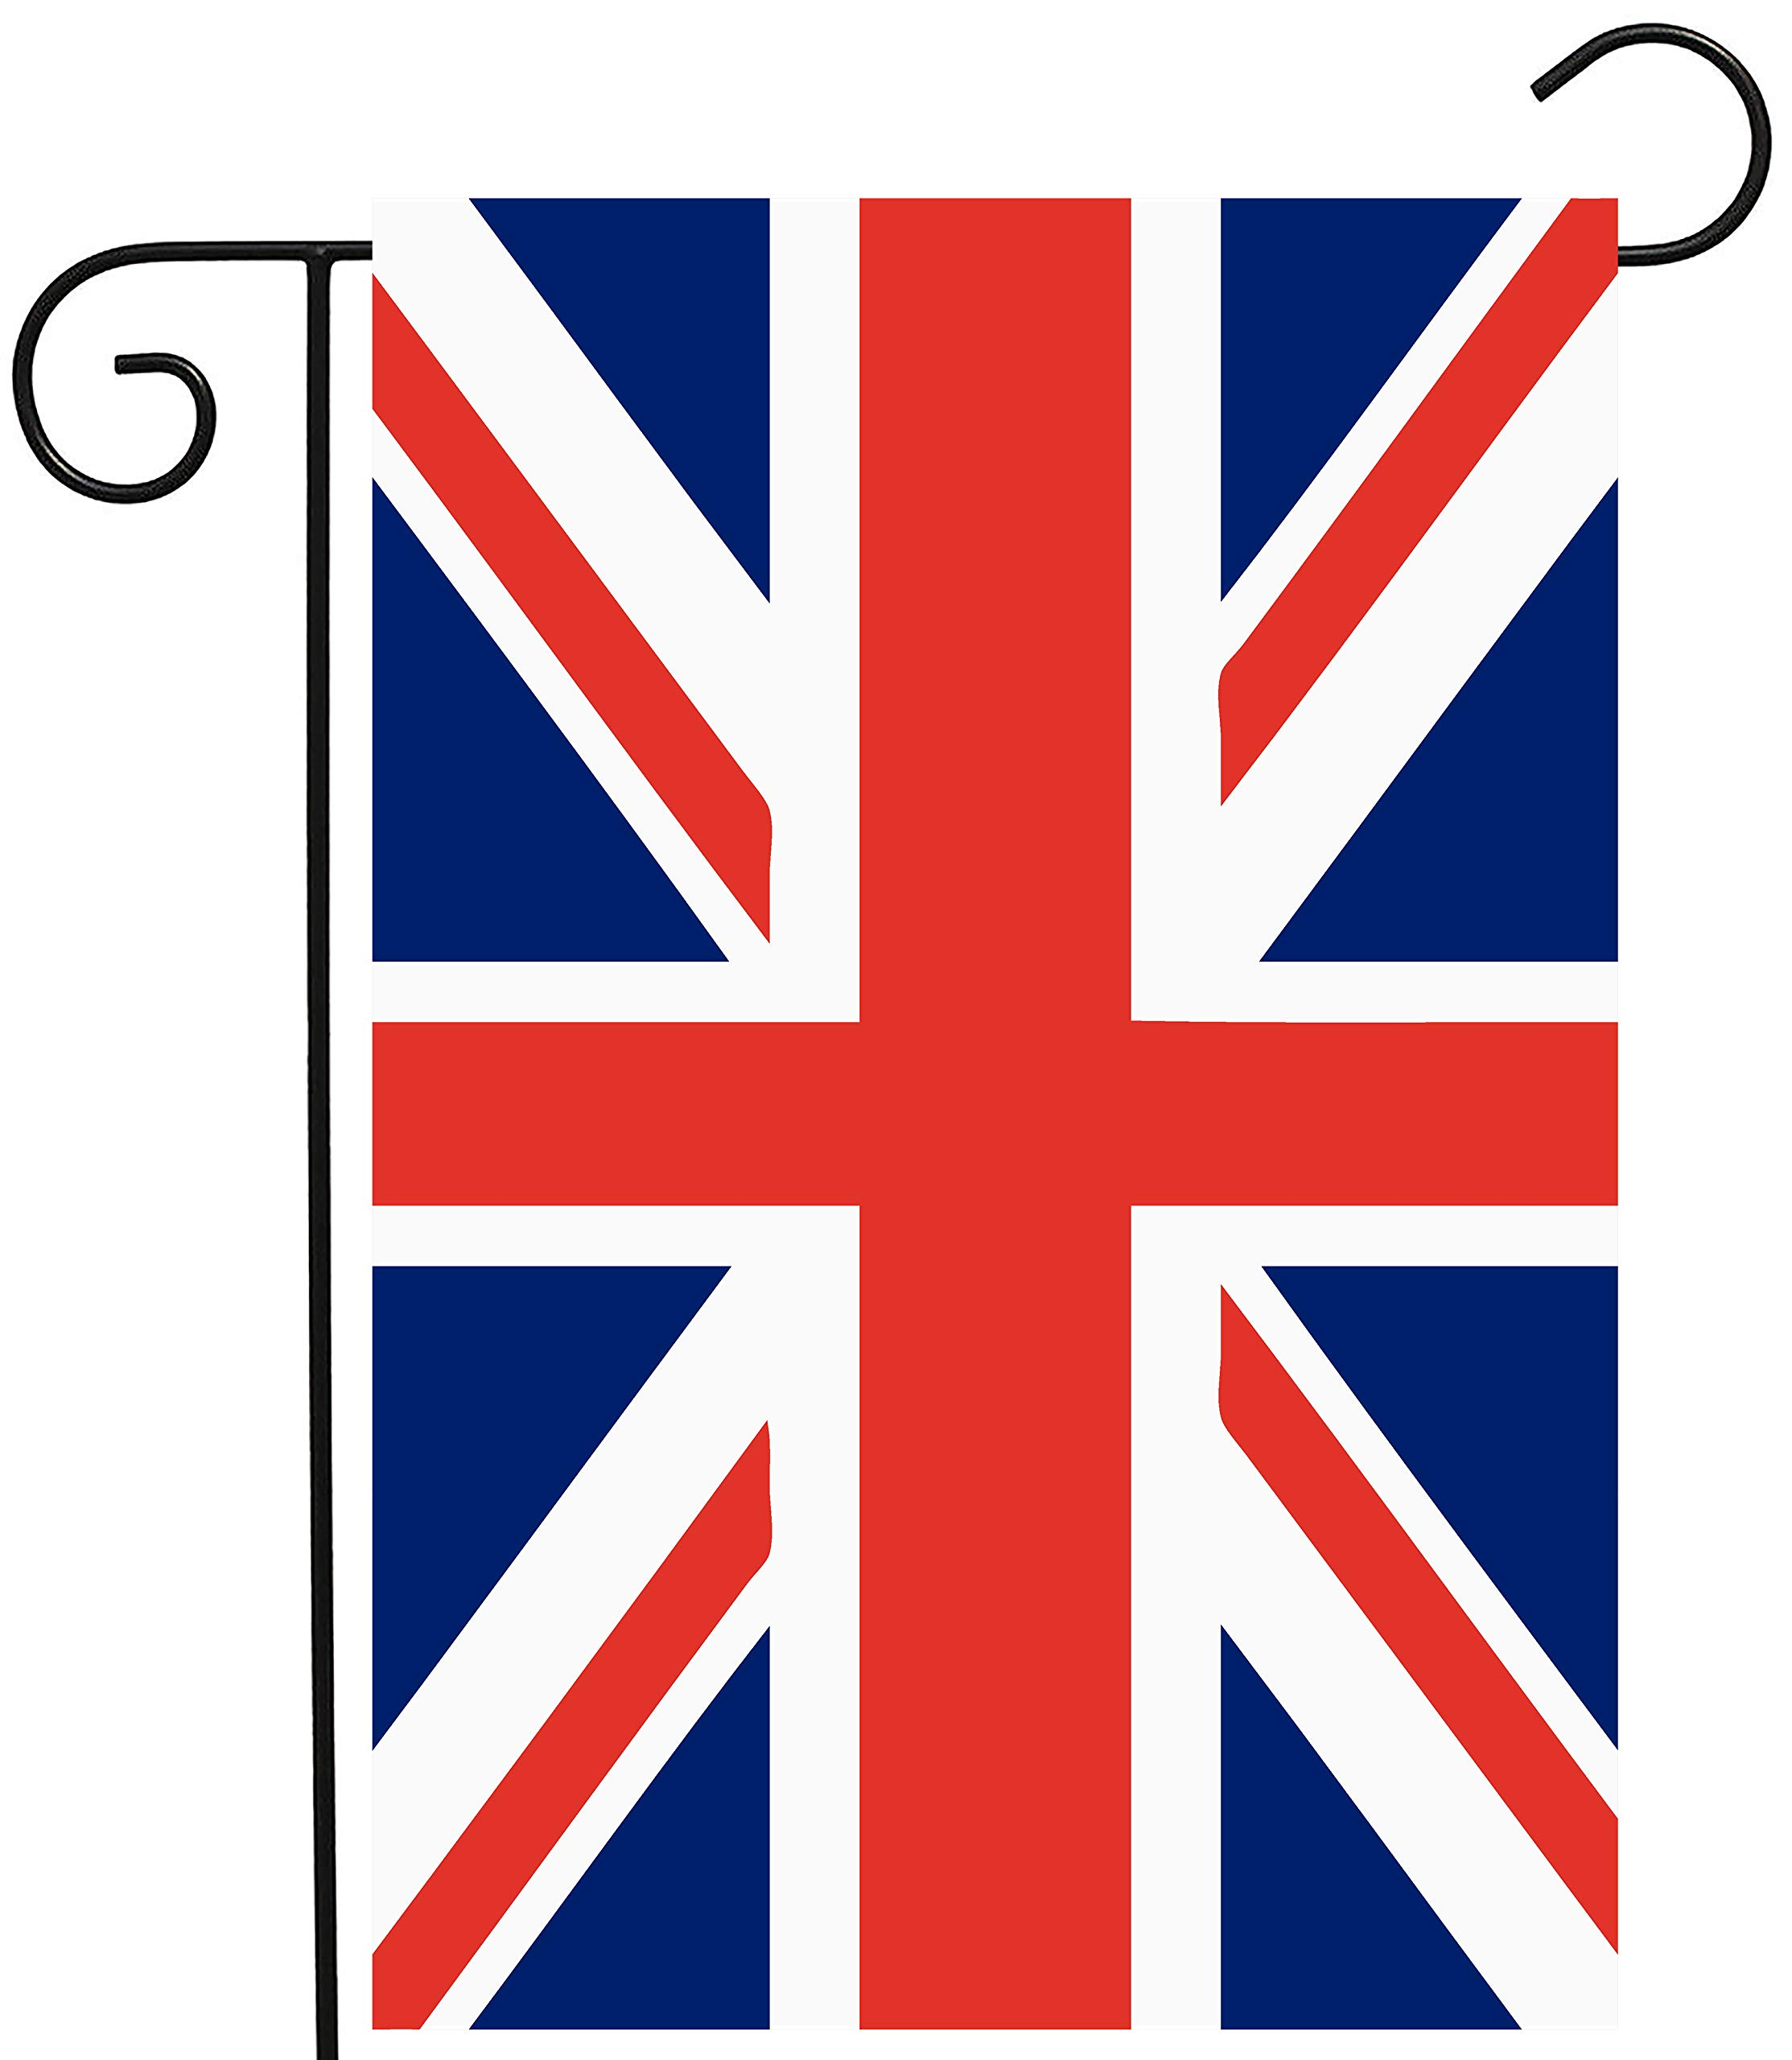 ShineSnow Union Jack British UK Flag Garden Yard Flag 12''x 18'' Double Sided, Polyester Great Britian England United Kingdom Welcome House Flag Banners Patio Lawn Outdoor Home Decor